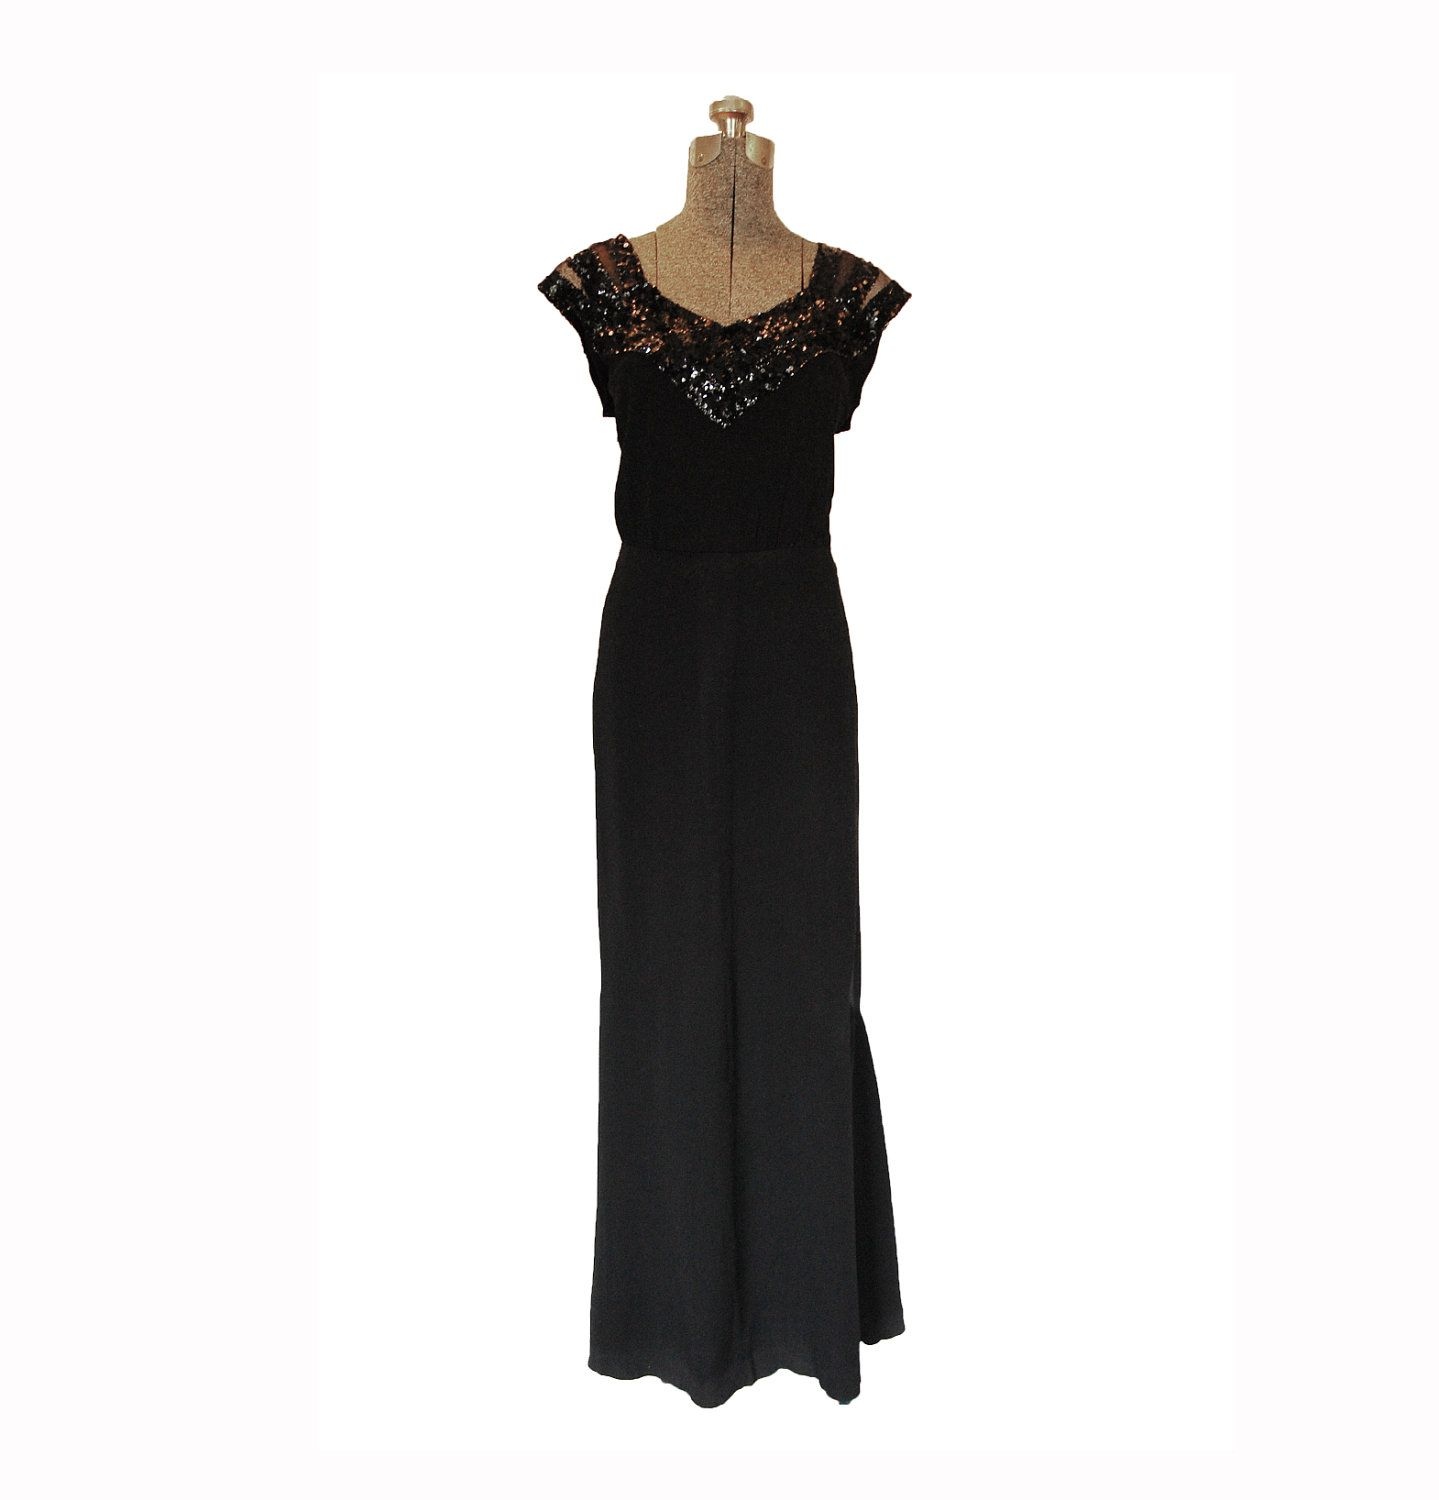 Vintage s s dress designer imagnin black crepe sequined